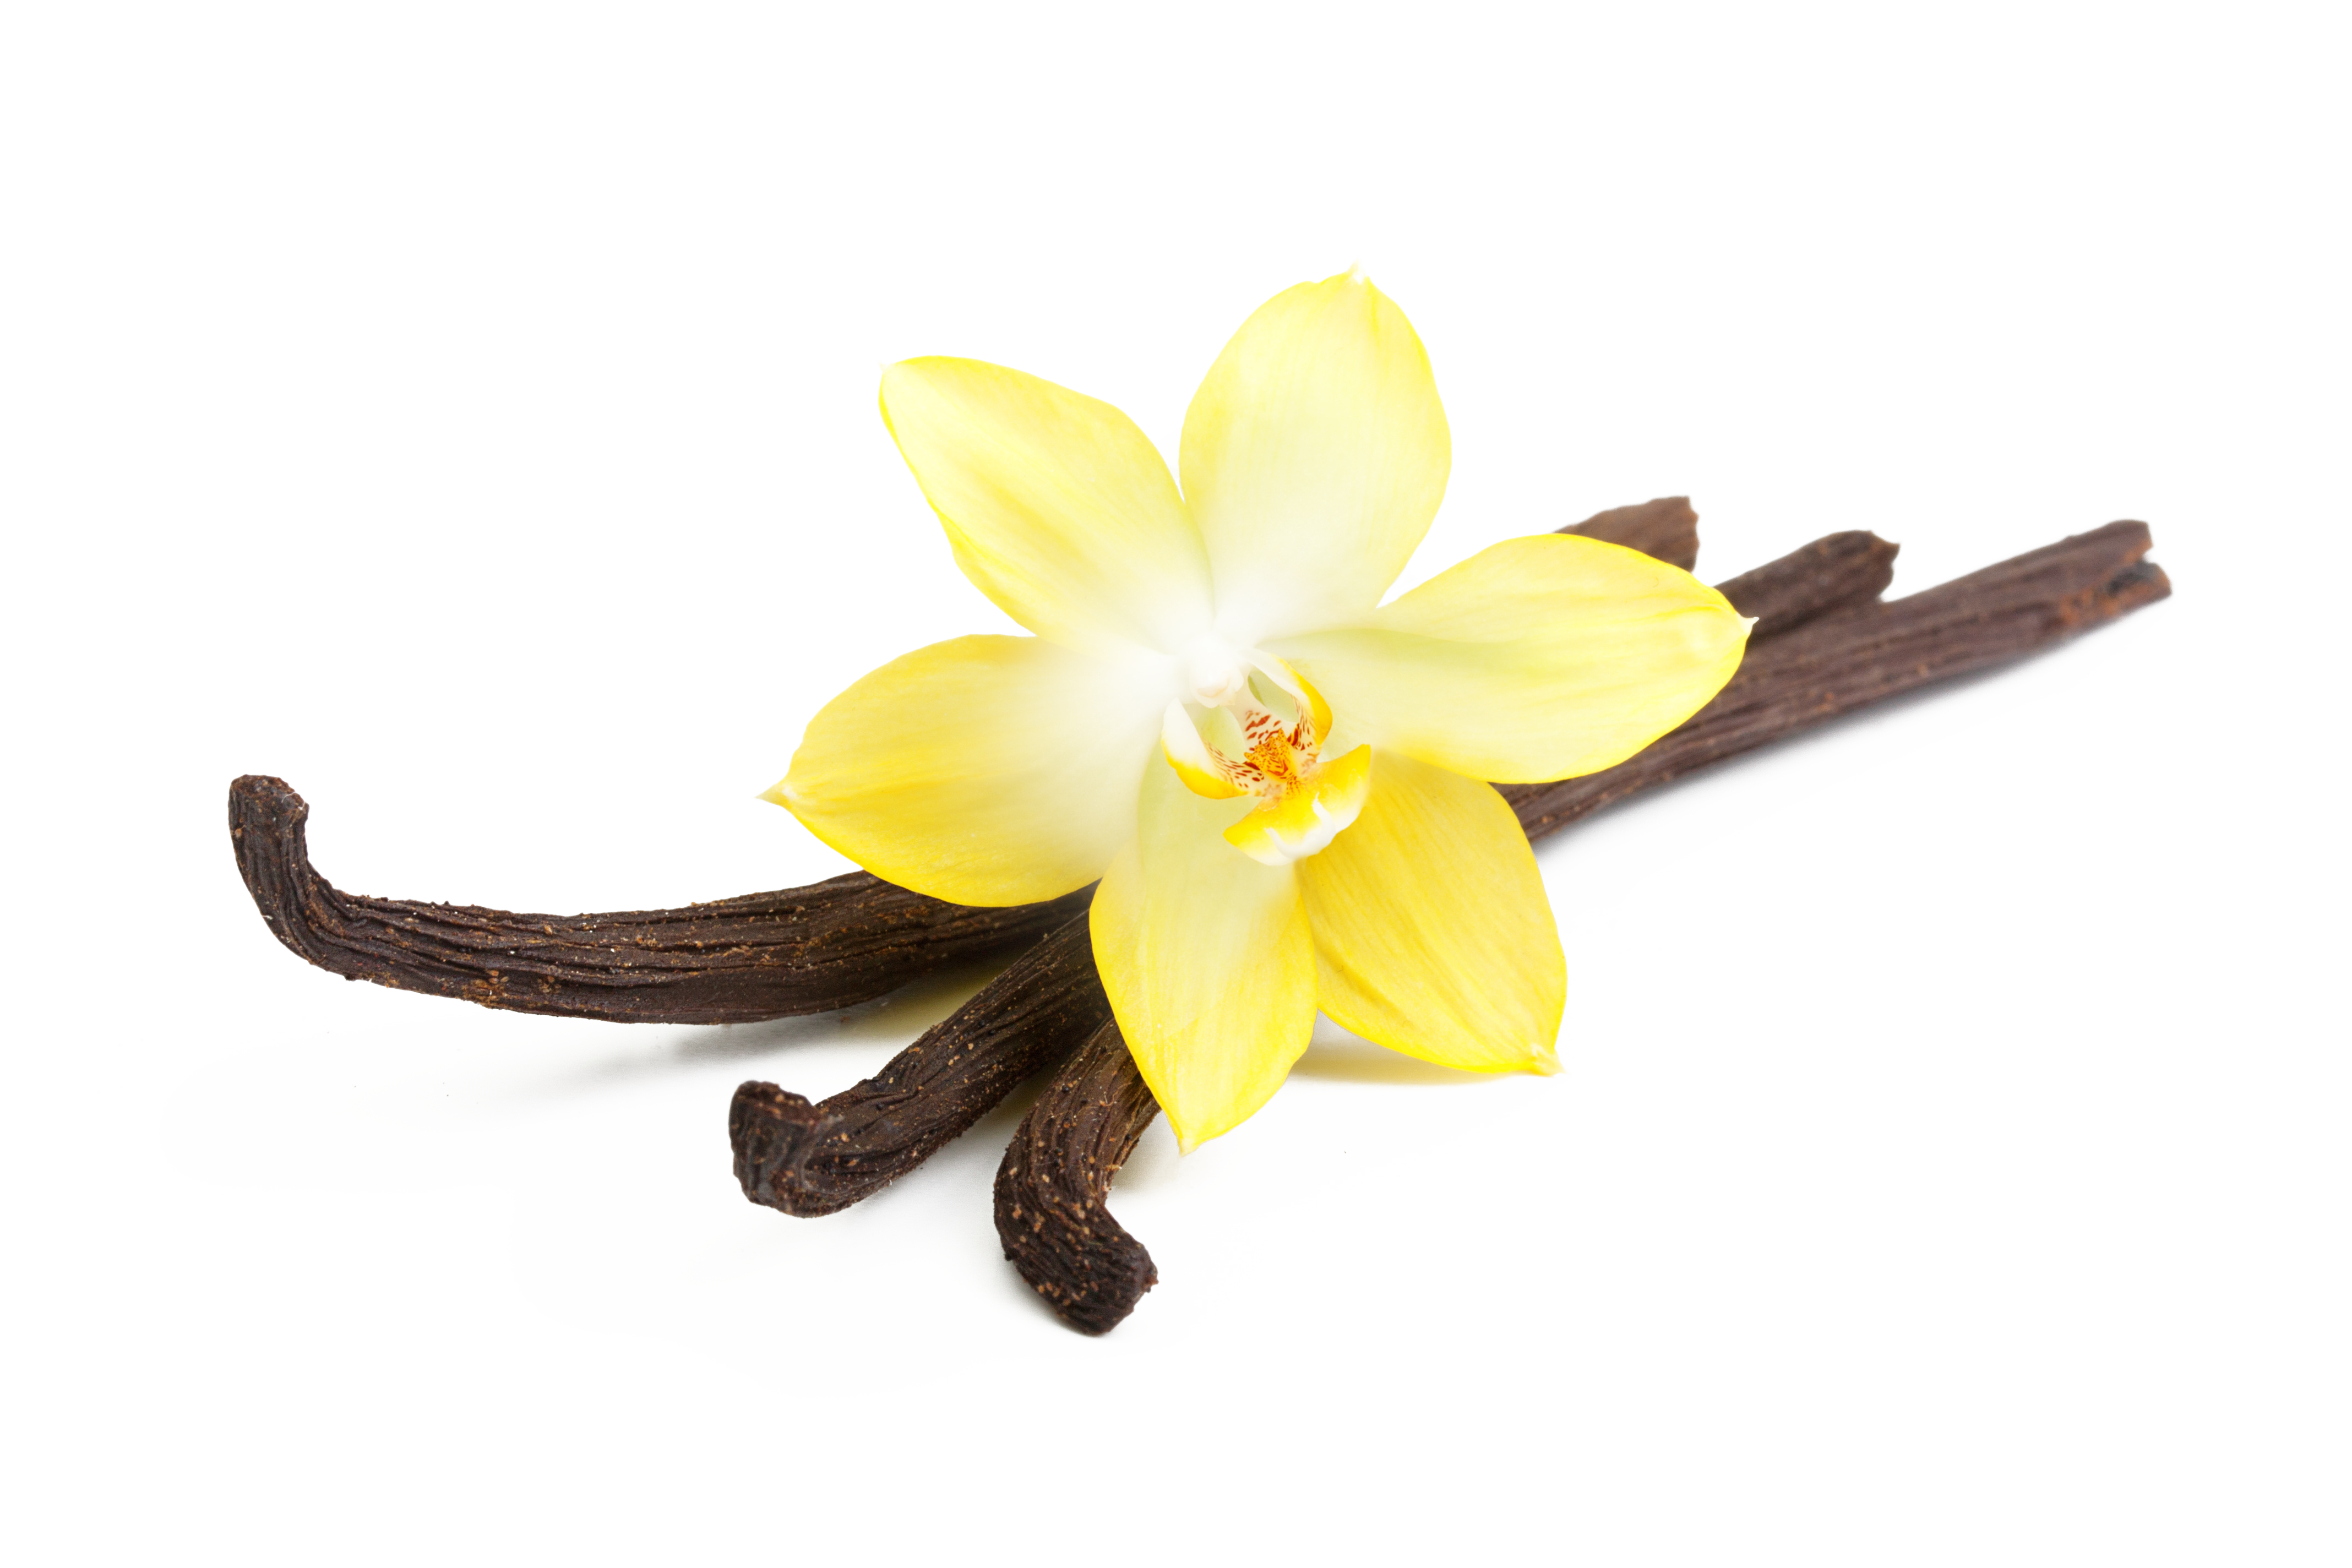 Vanilla flower clipart clip art freeuse 28+ Collection of Vanilla Clipart Transparent | High quality, free ... clip art freeuse